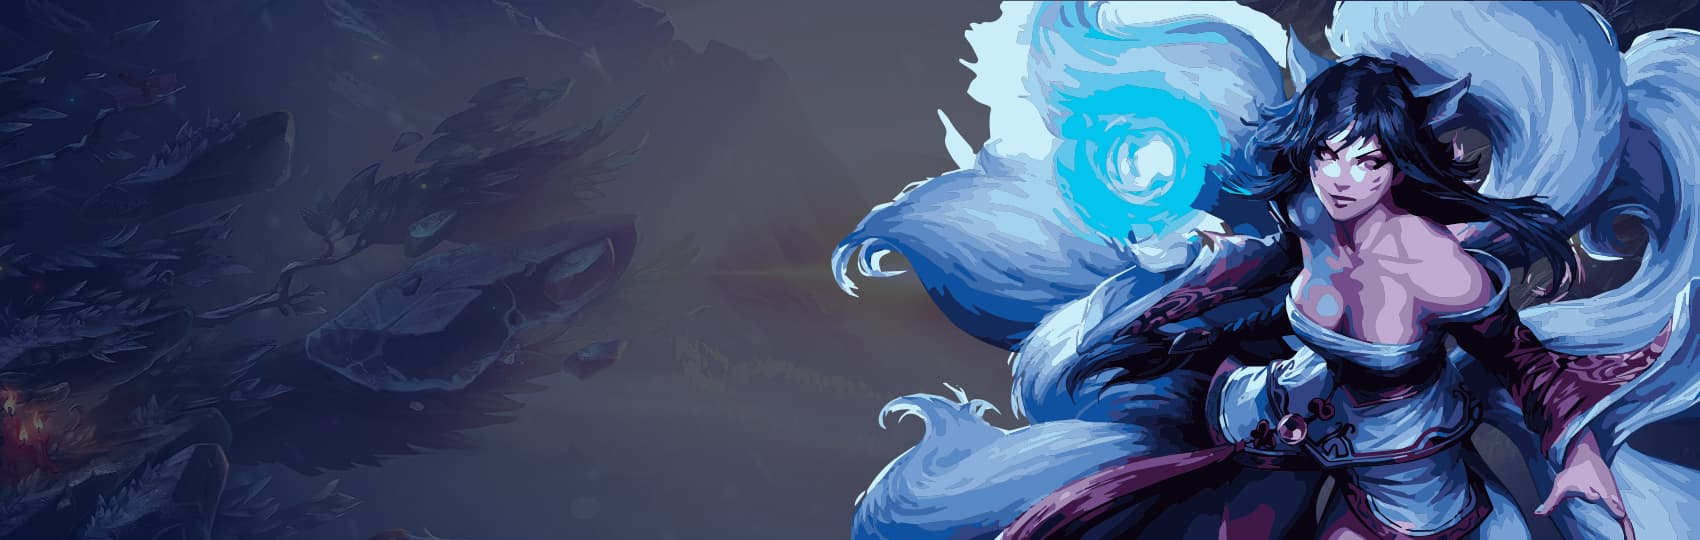 Ahri in LoL 2021: Everything about the character